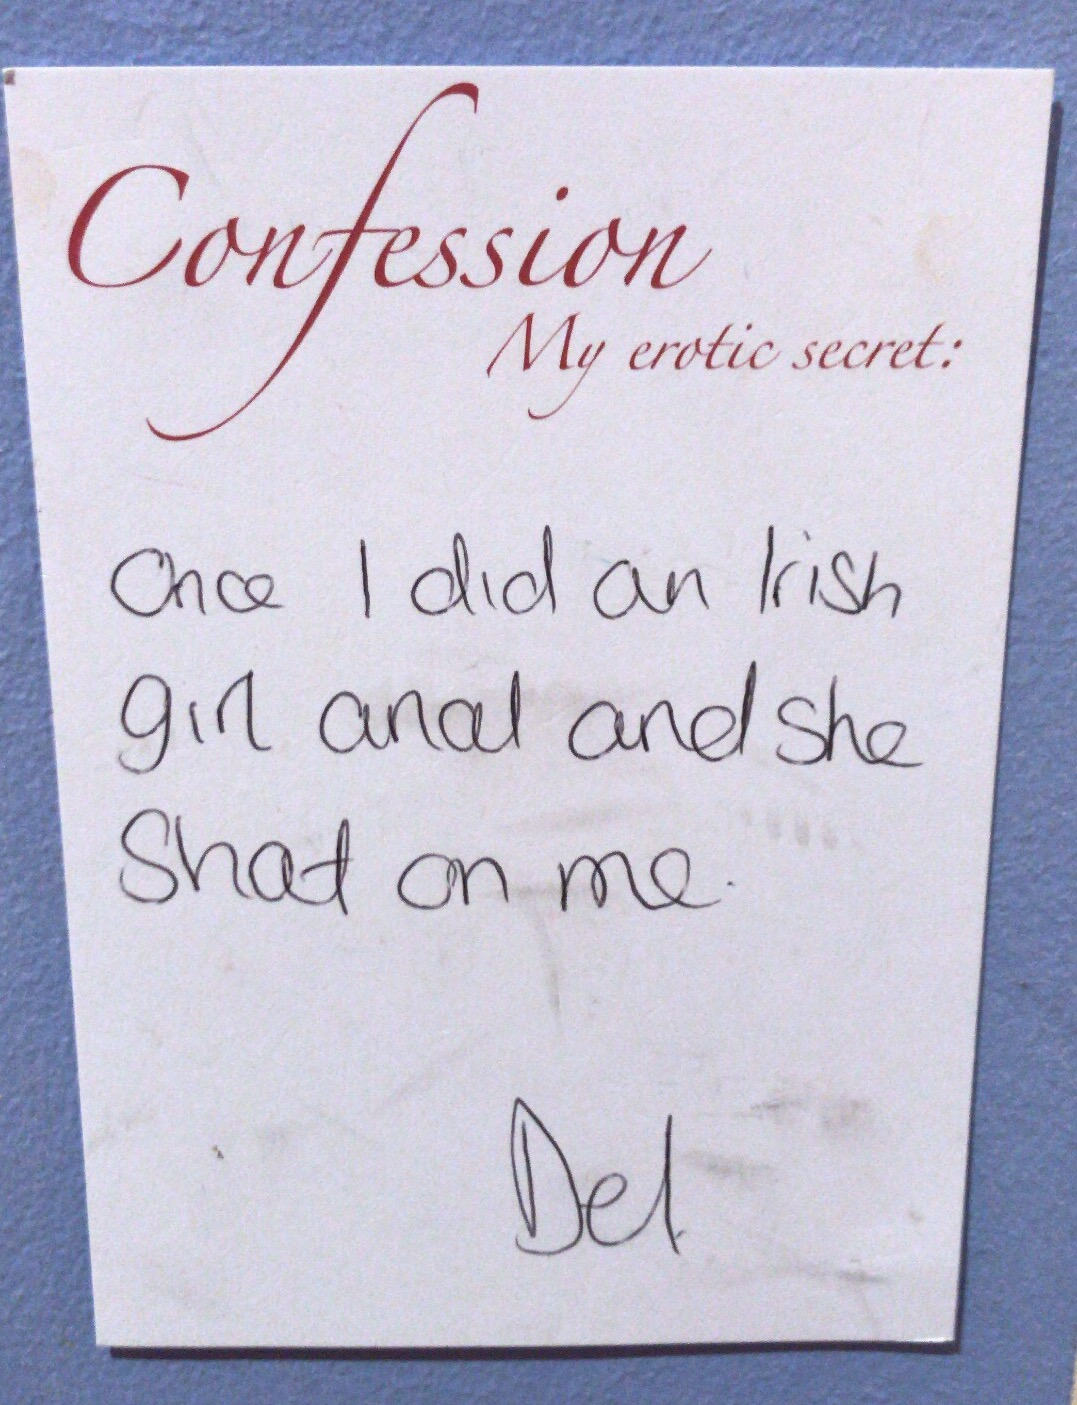 Sex confession from Red Light District, Amsterdam.